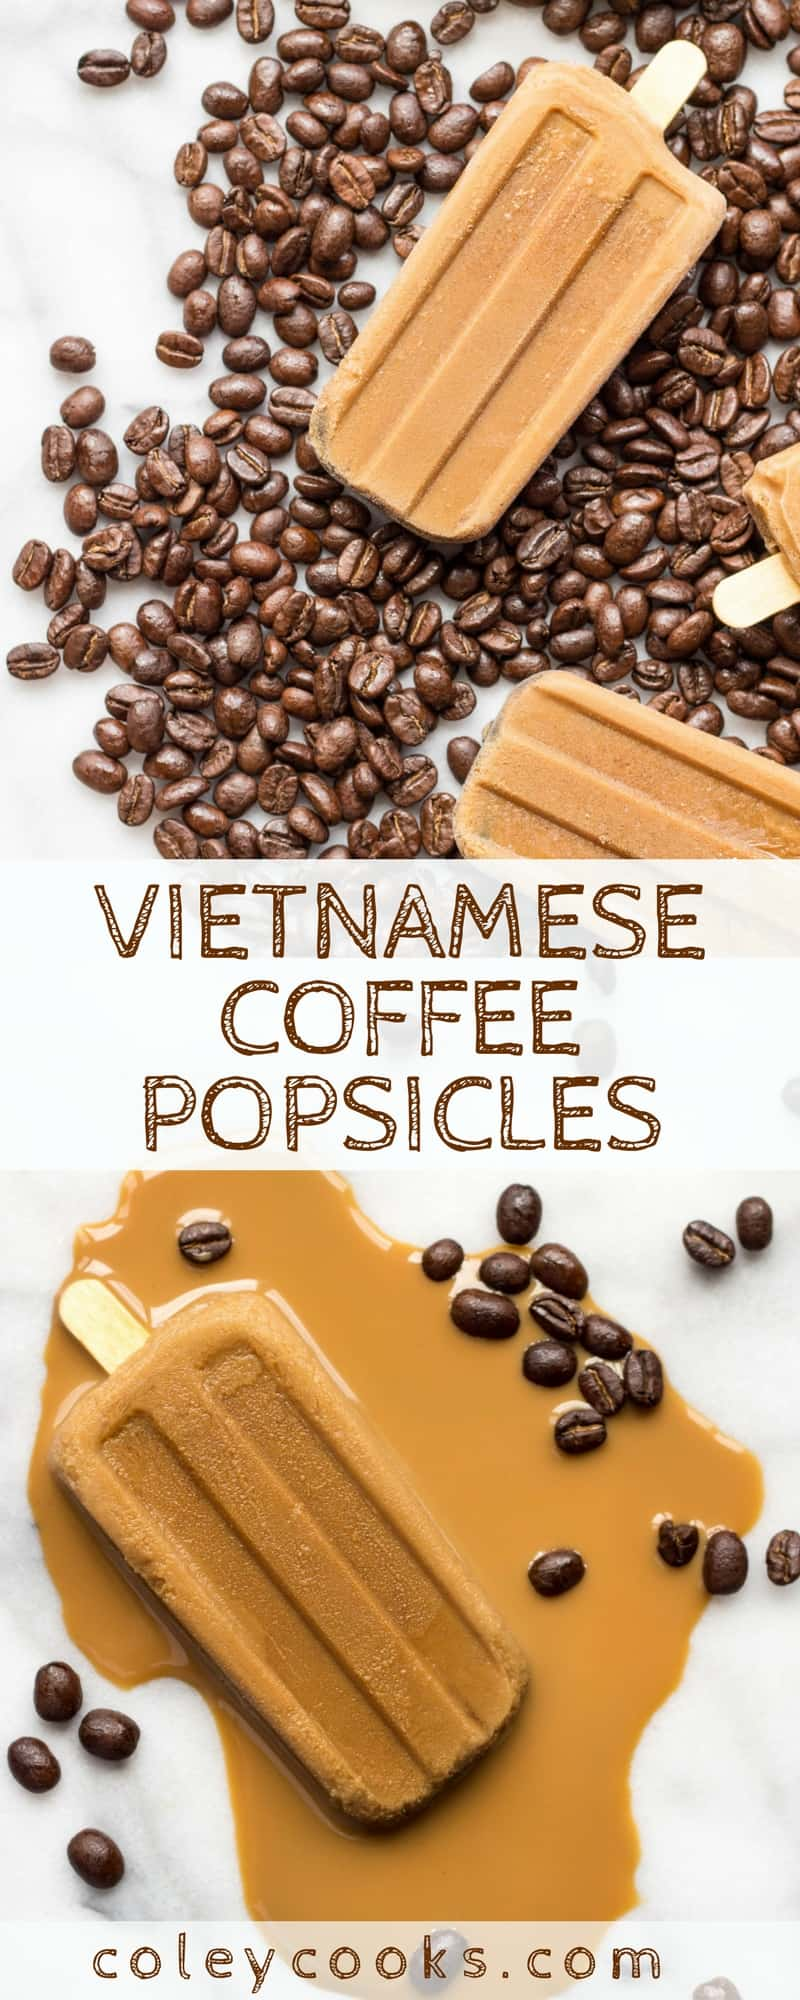 VIETNAMESE COFFEE POPSICLES | This easy recipe for Vietnamese Coffee Popsicles is made with super strong Vietnamese chicory coffee! Awesome frozen treat on a hot summer day. | ColeyCooks.com.jpg